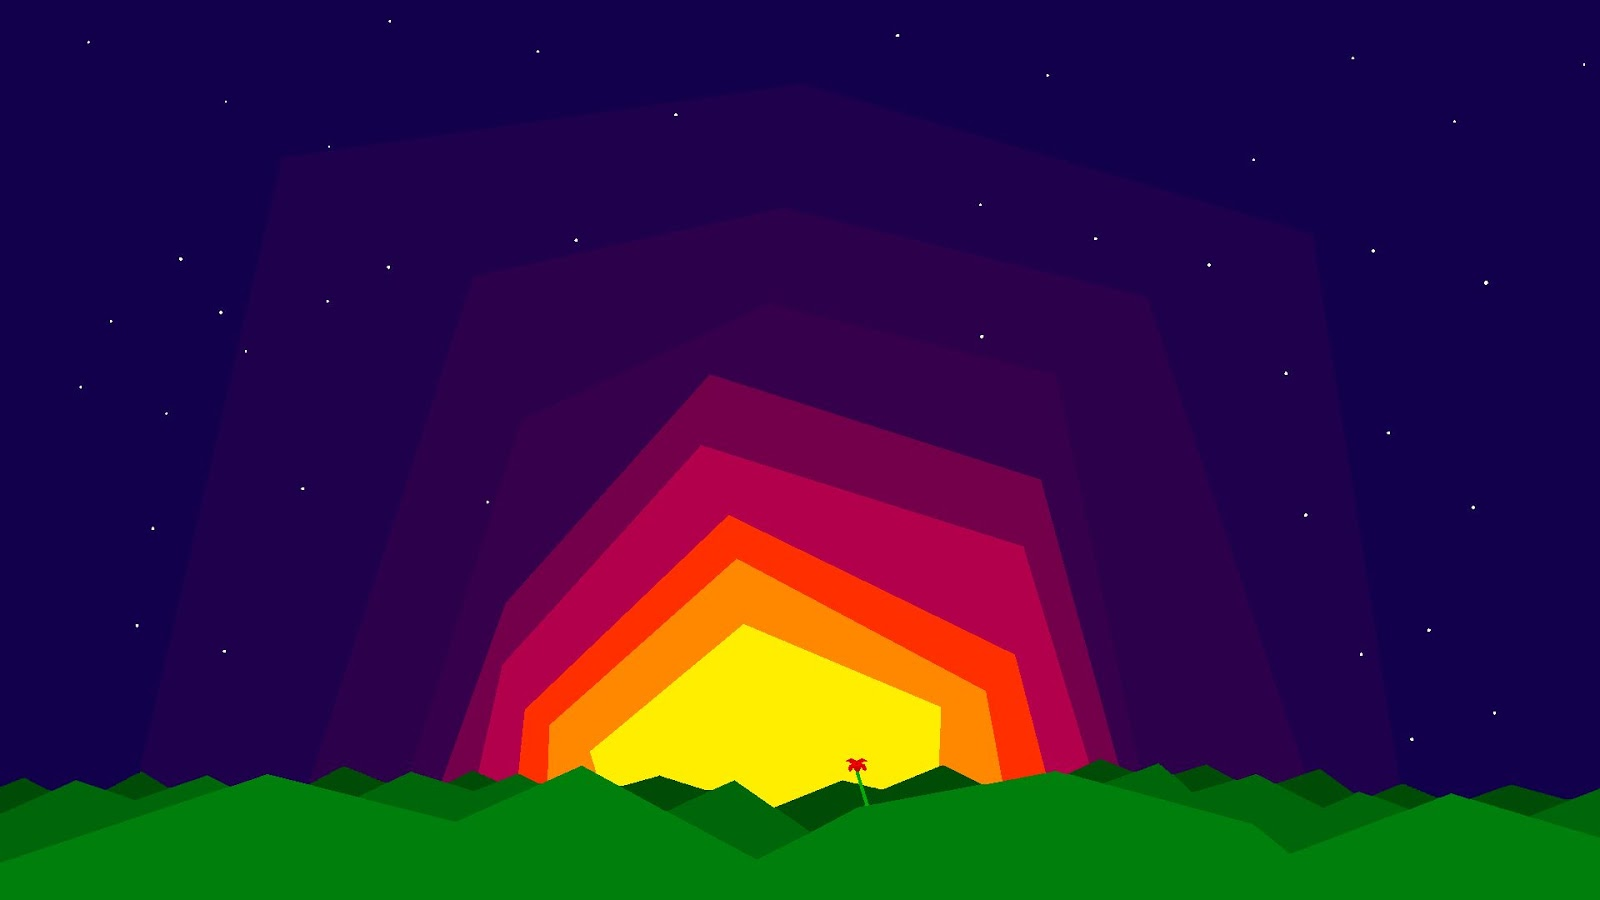 8 bit colorful wallppaper